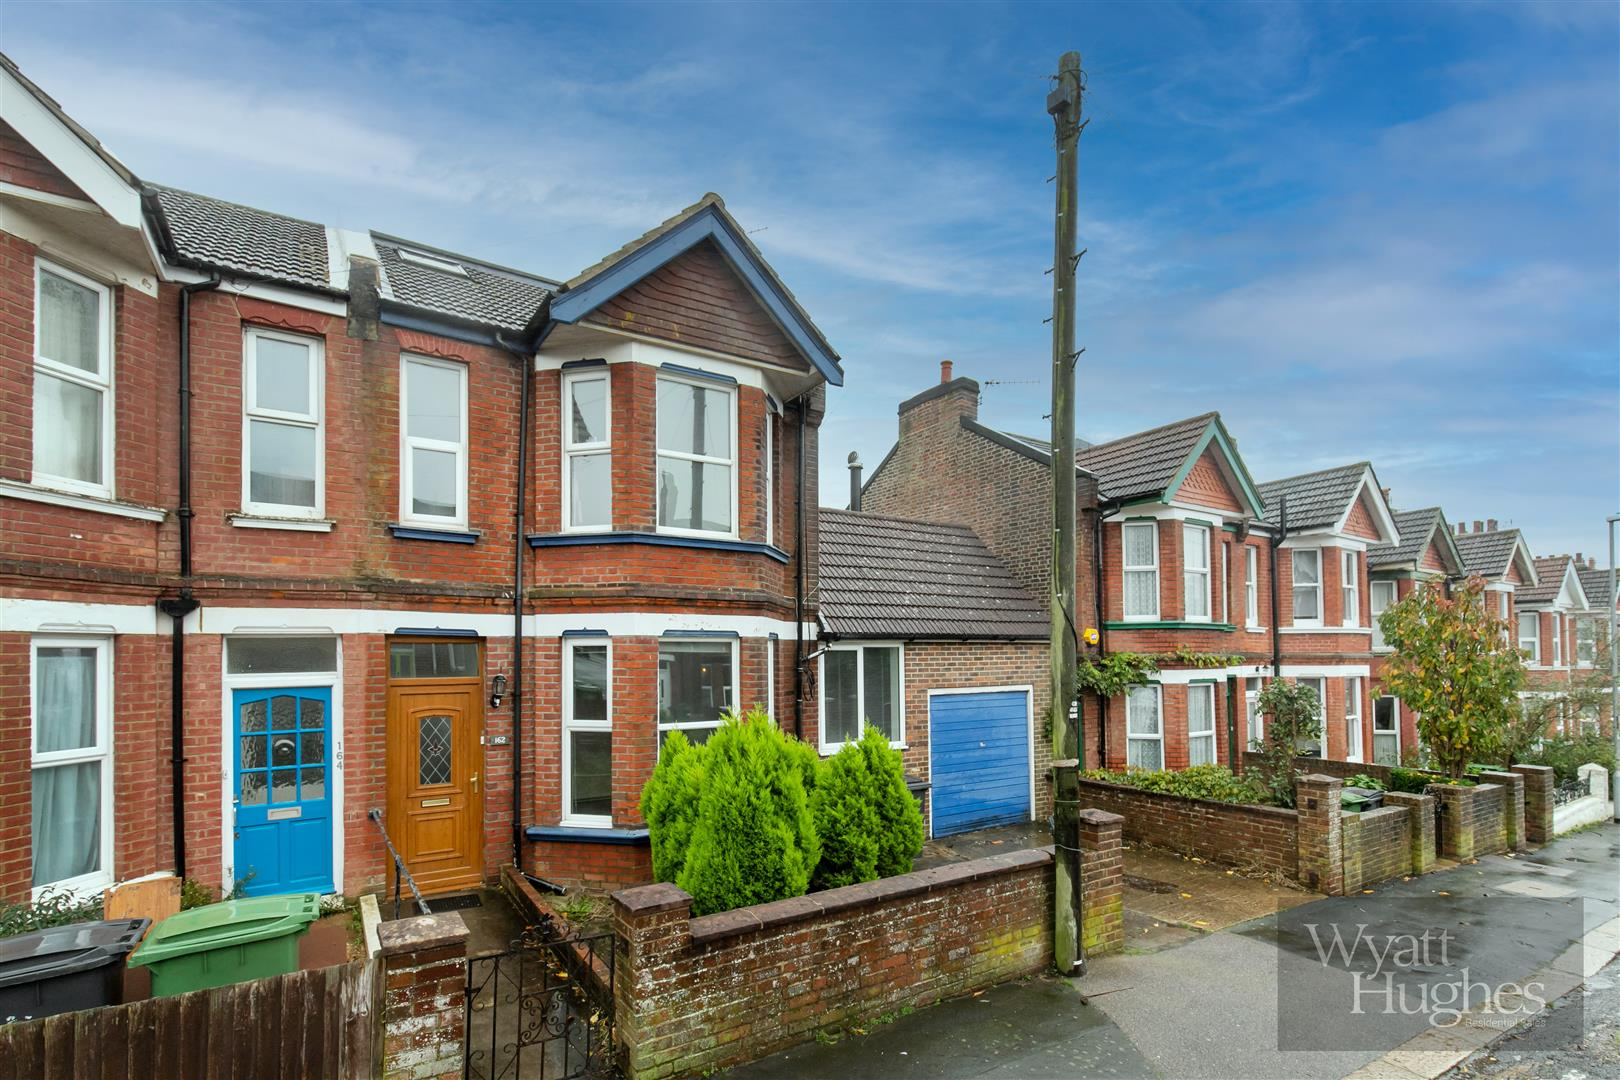 3 bed semi-detached house for sale in Edmund Road, Hastings, TN35